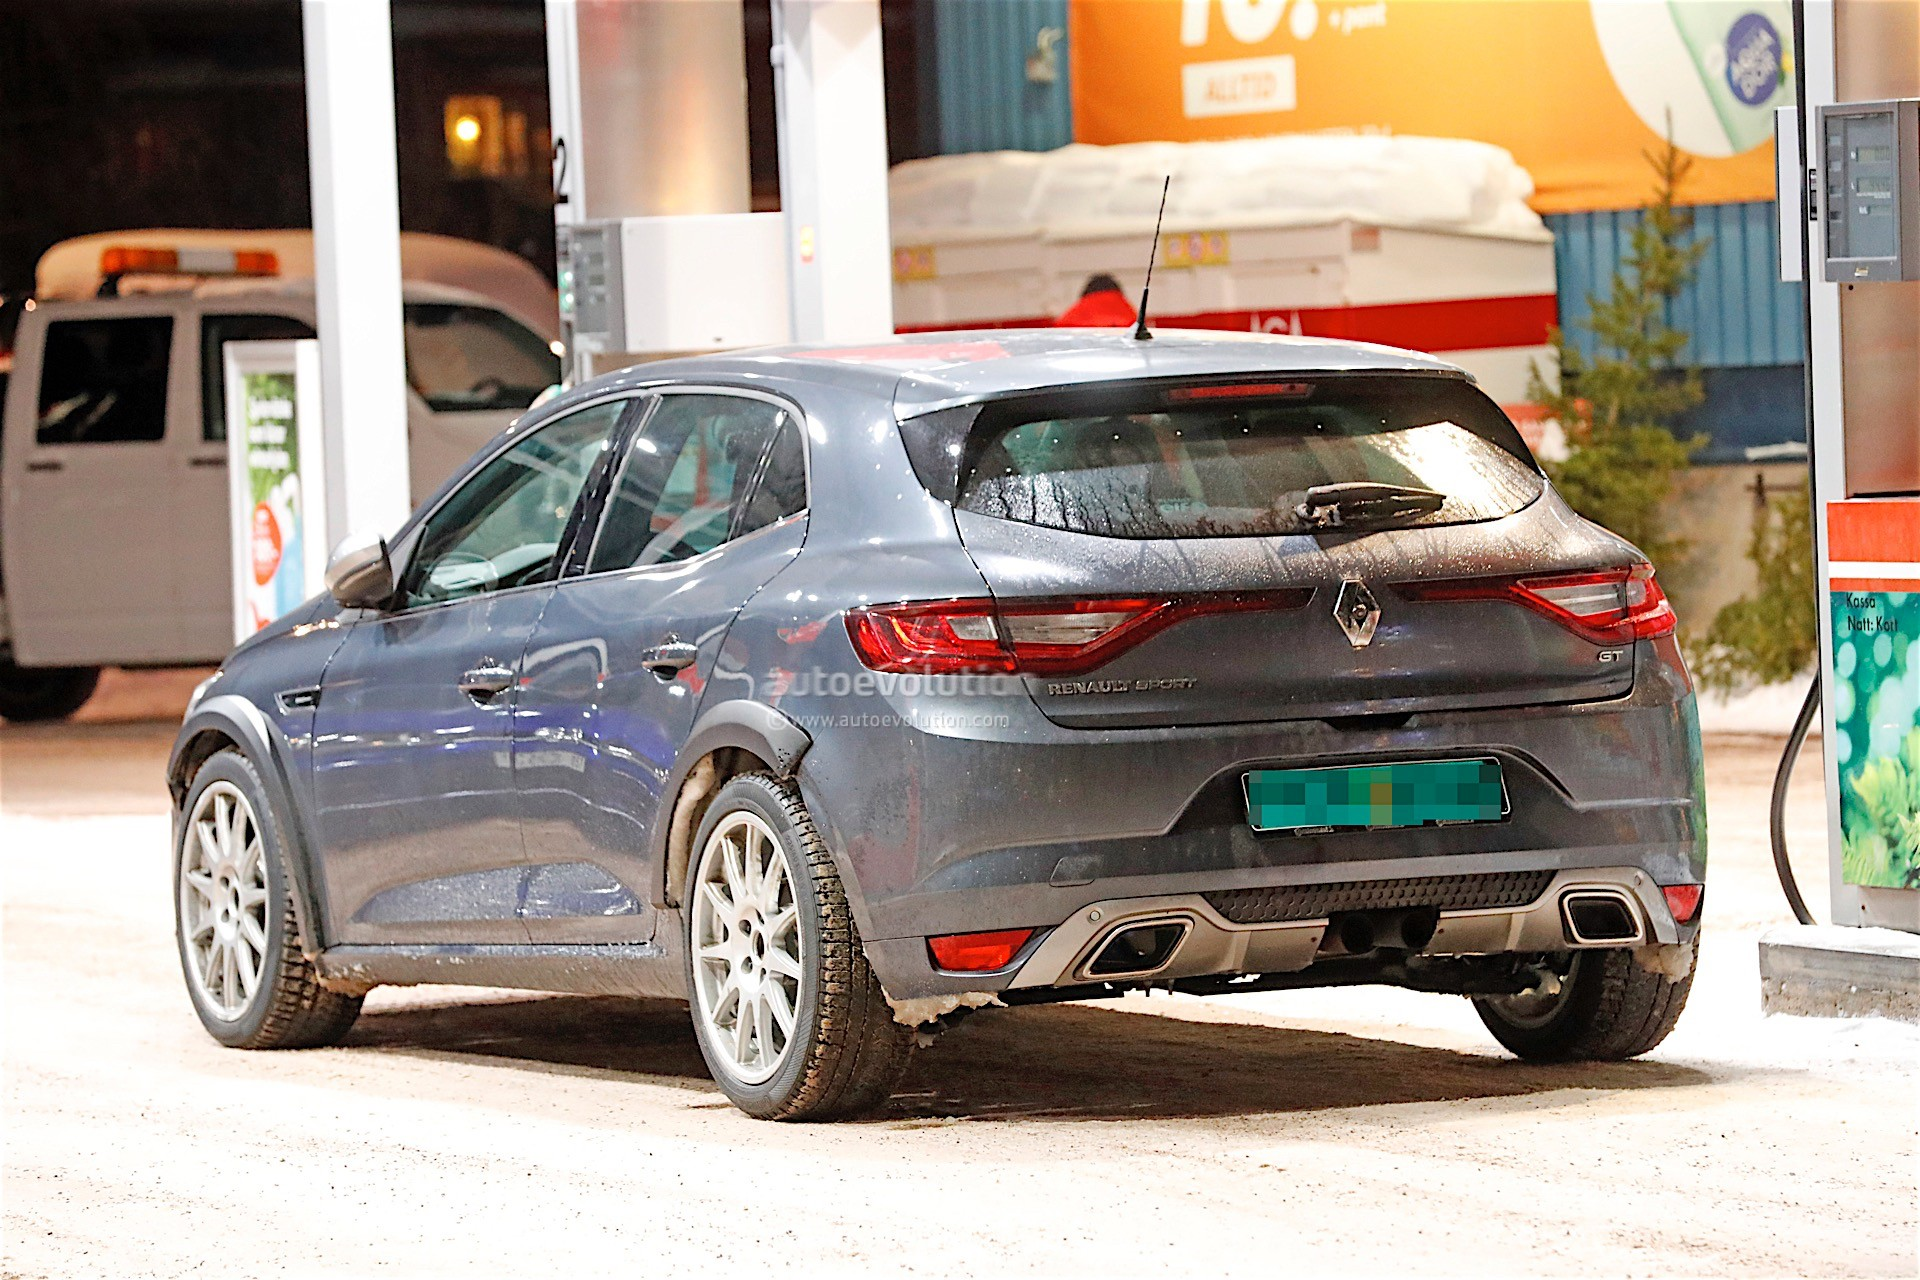 2018 renault megane rs spied next to volkswagen golf r autoevolution. Black Bedroom Furniture Sets. Home Design Ideas